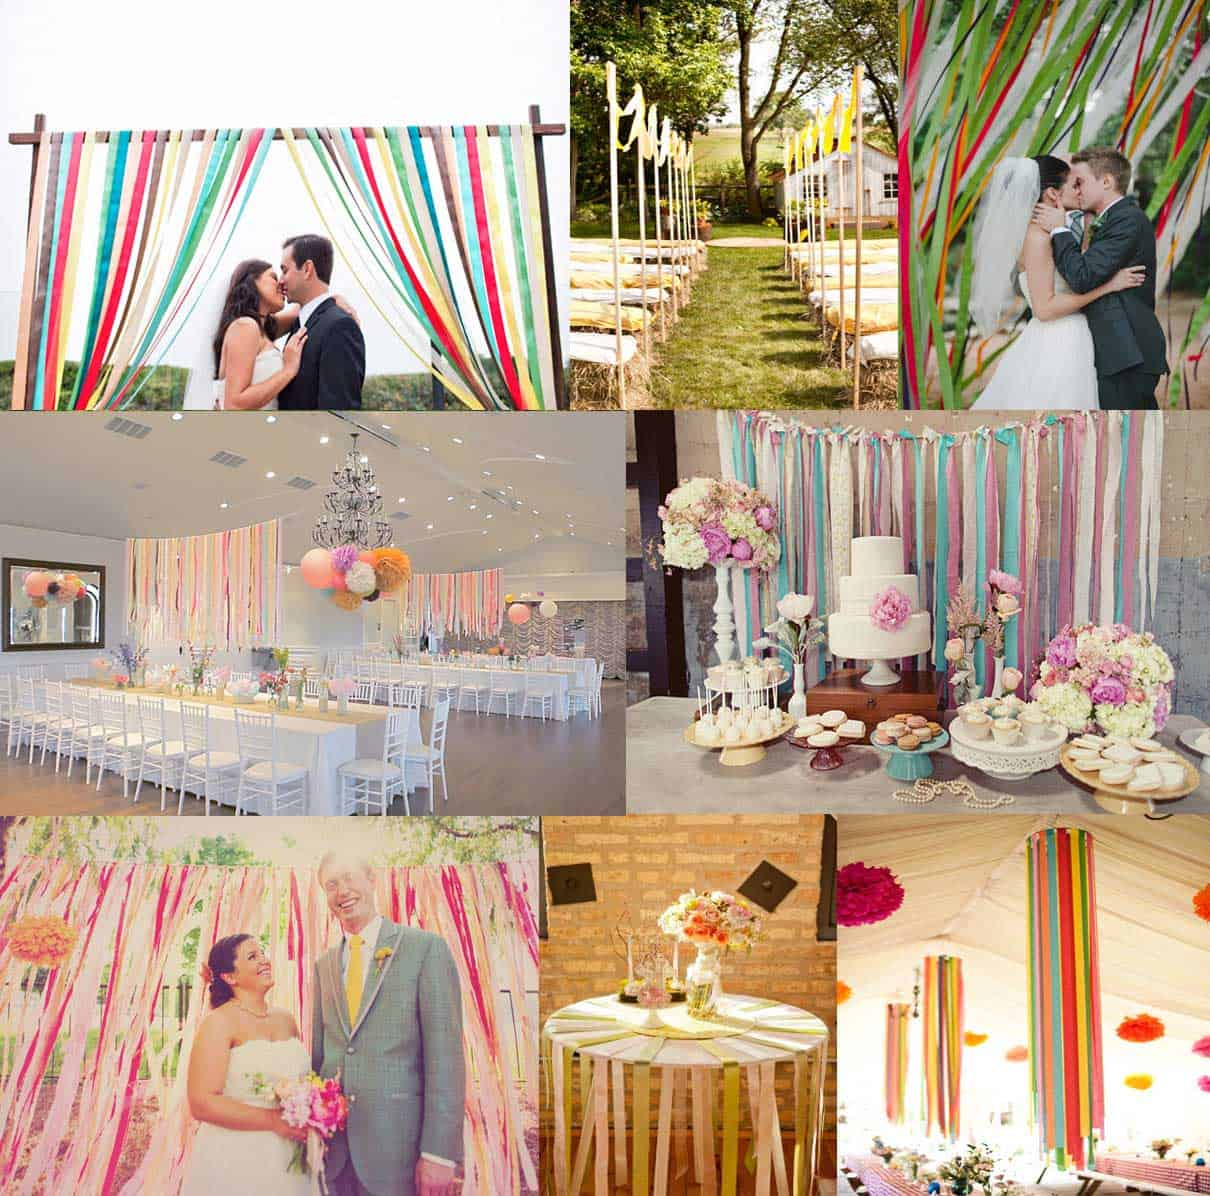 DIY Wedding Decorations For Every Budget - Ribbon Backdrop Idea